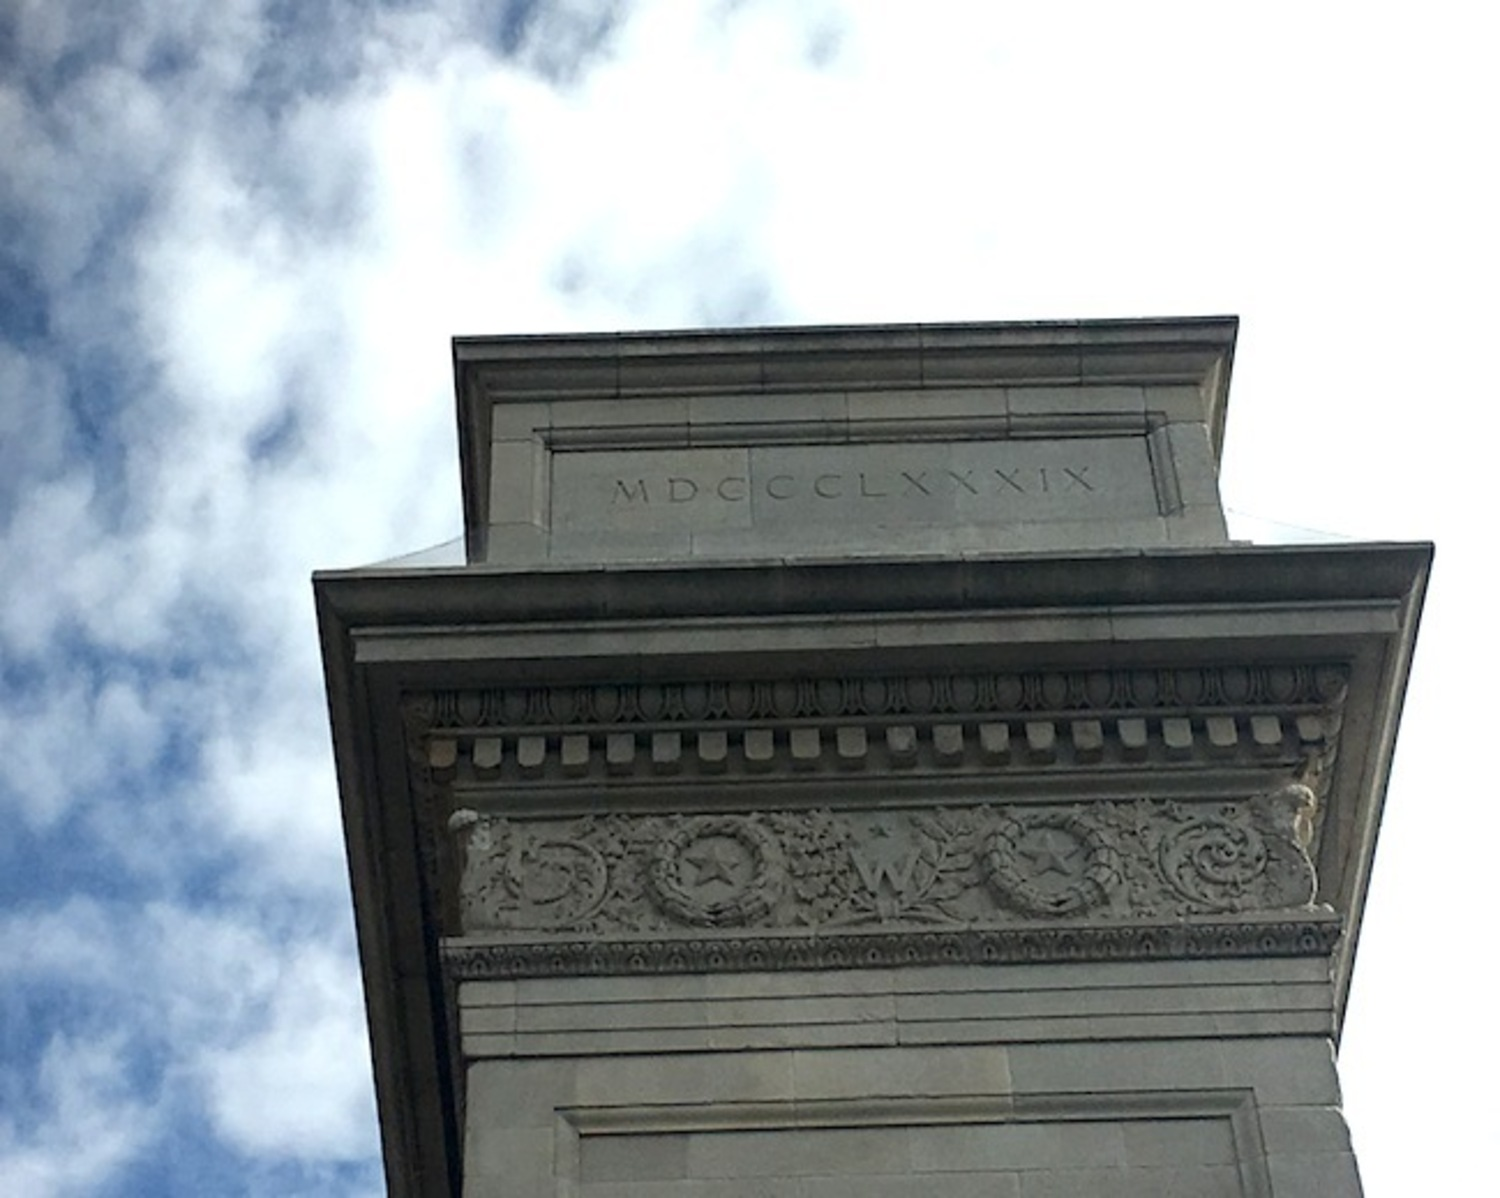 What is the Significance of the Roman Numerals on the Washington Square Arch? (western side of monument)